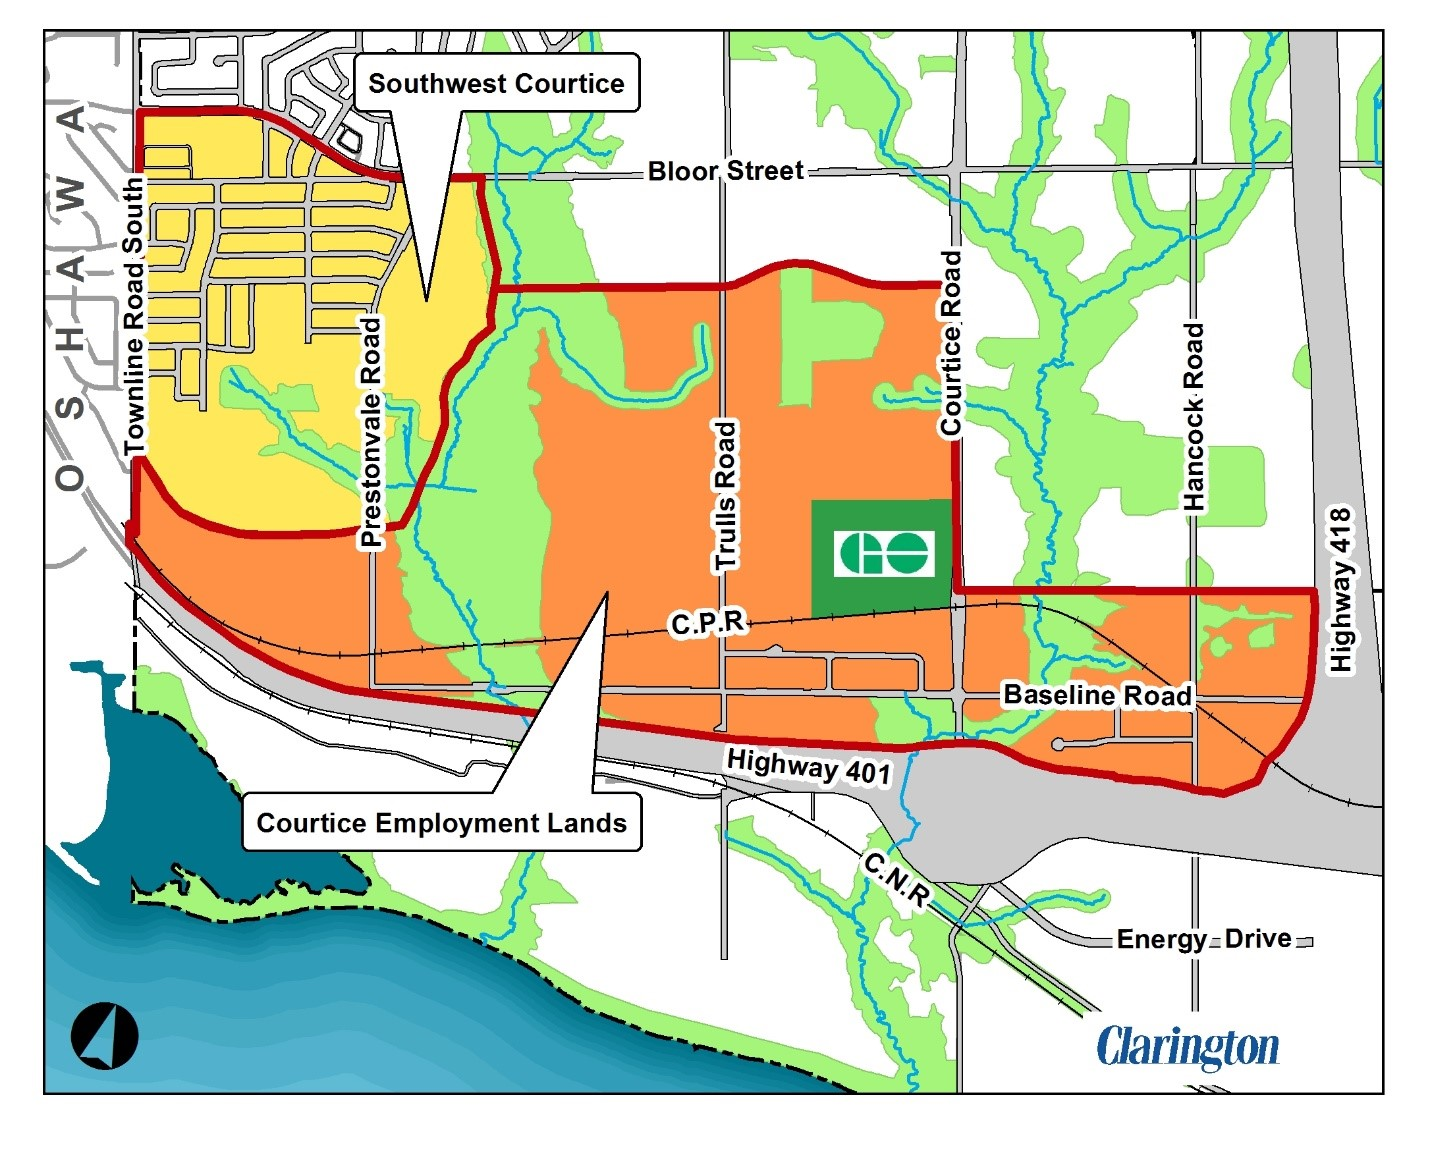 Courtice-Employment-Lands